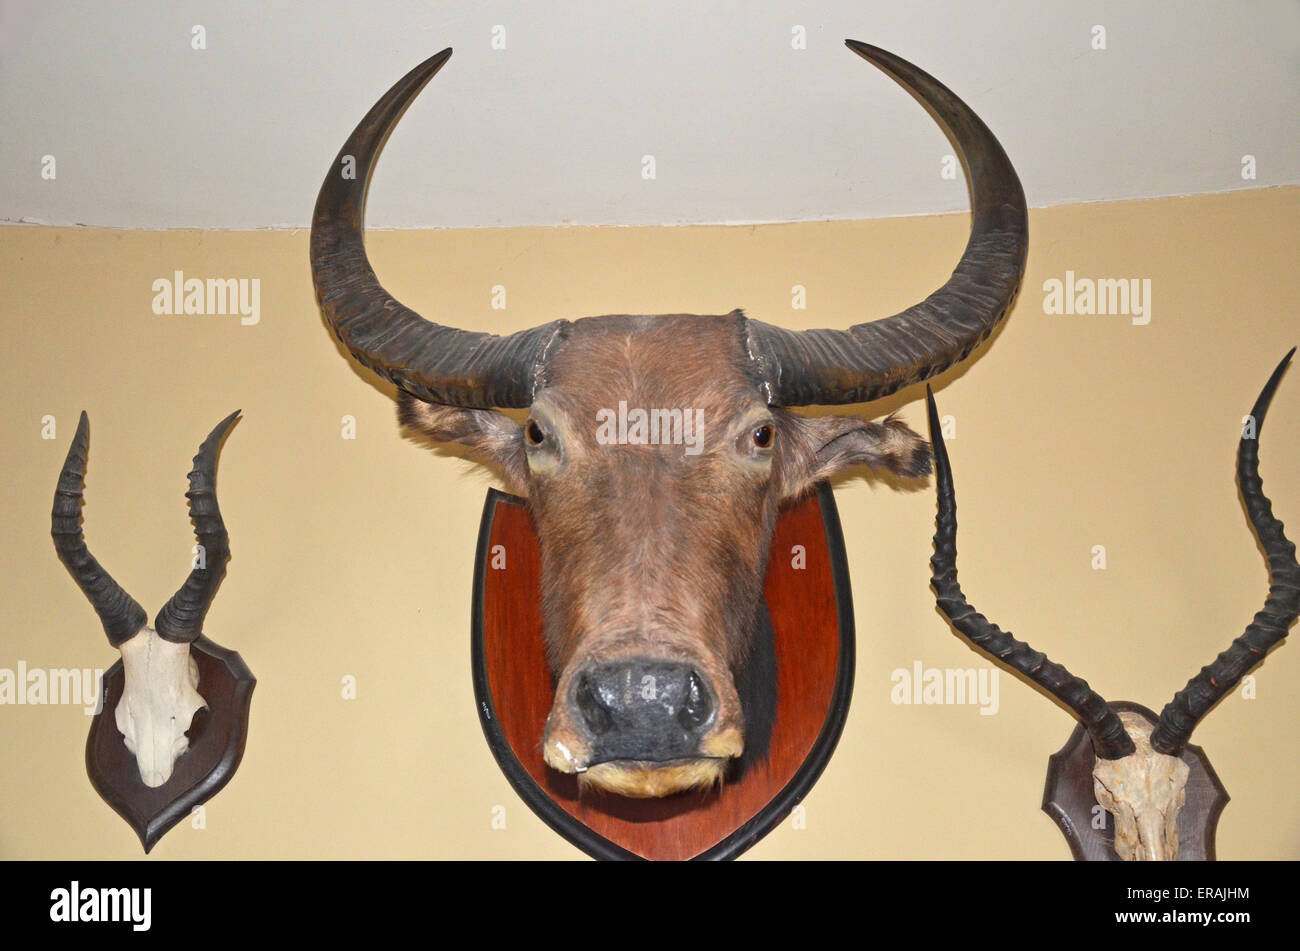 Cow Skull On Wall Stock Photos & Cow Skull On Wall Stock Images ...